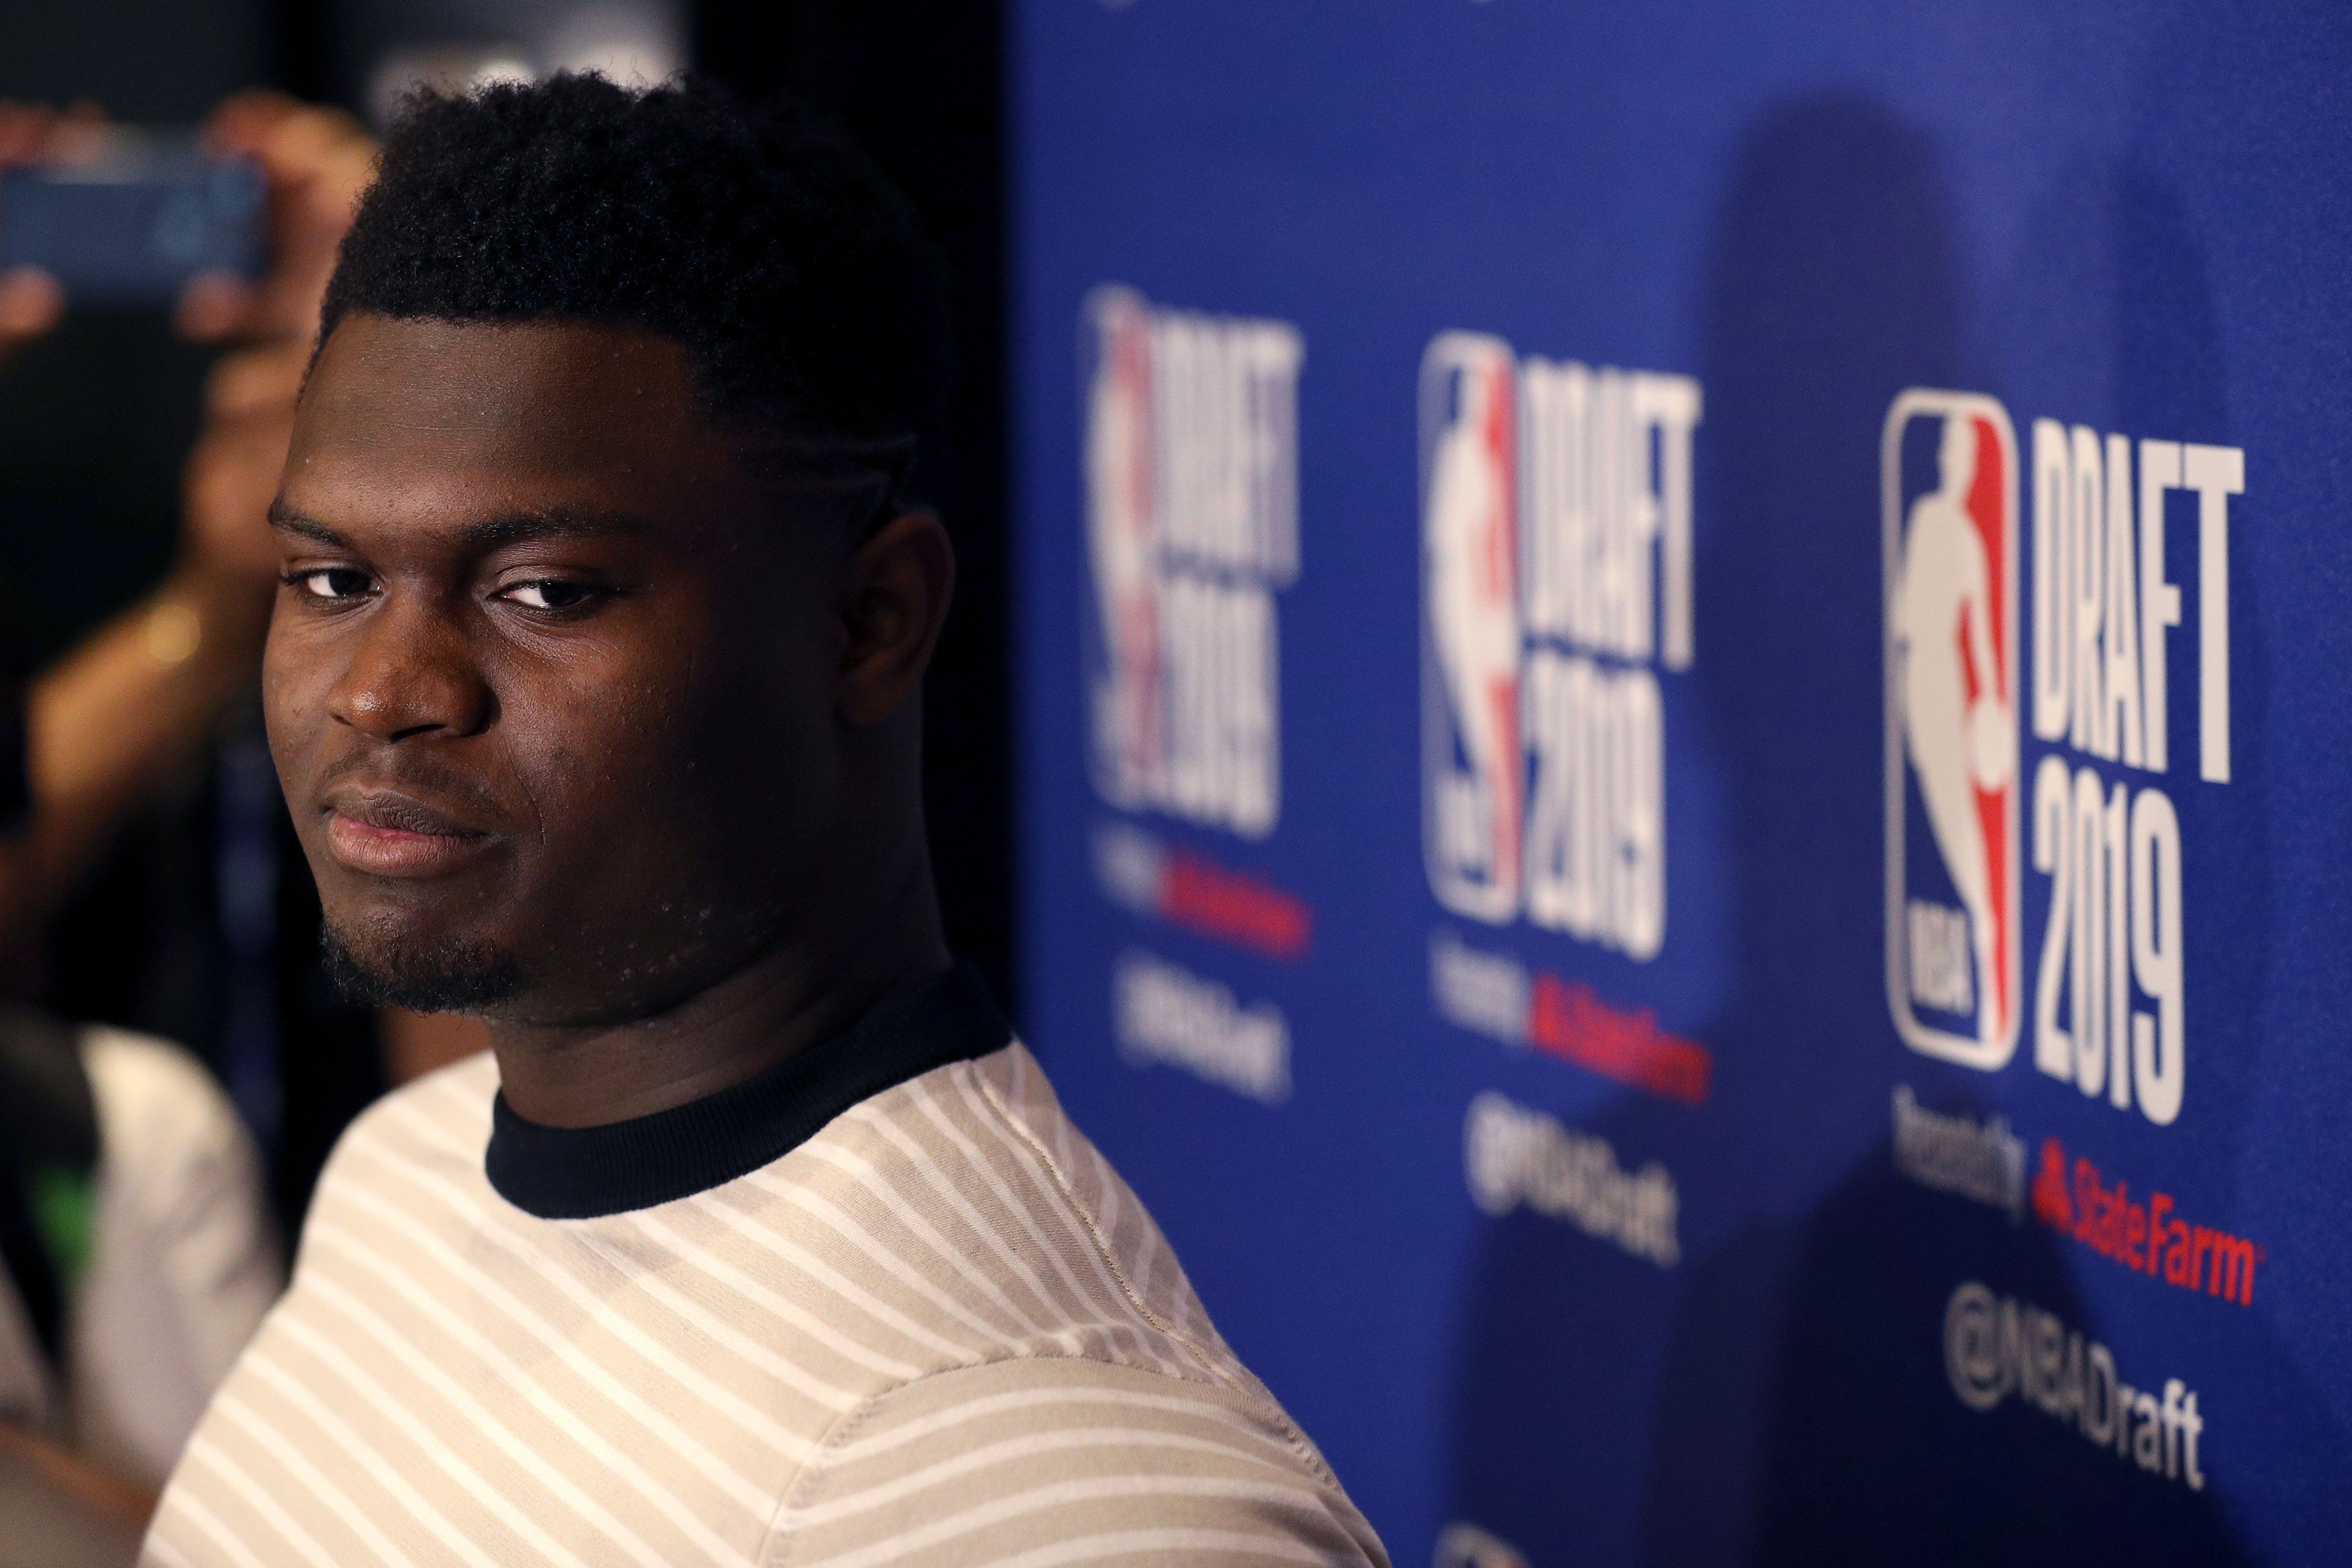 Zion Williamson speaks to the media ahead of the 2019 NBA Draft at the Grand Hyatt New York on June 19, 2019 in New York City